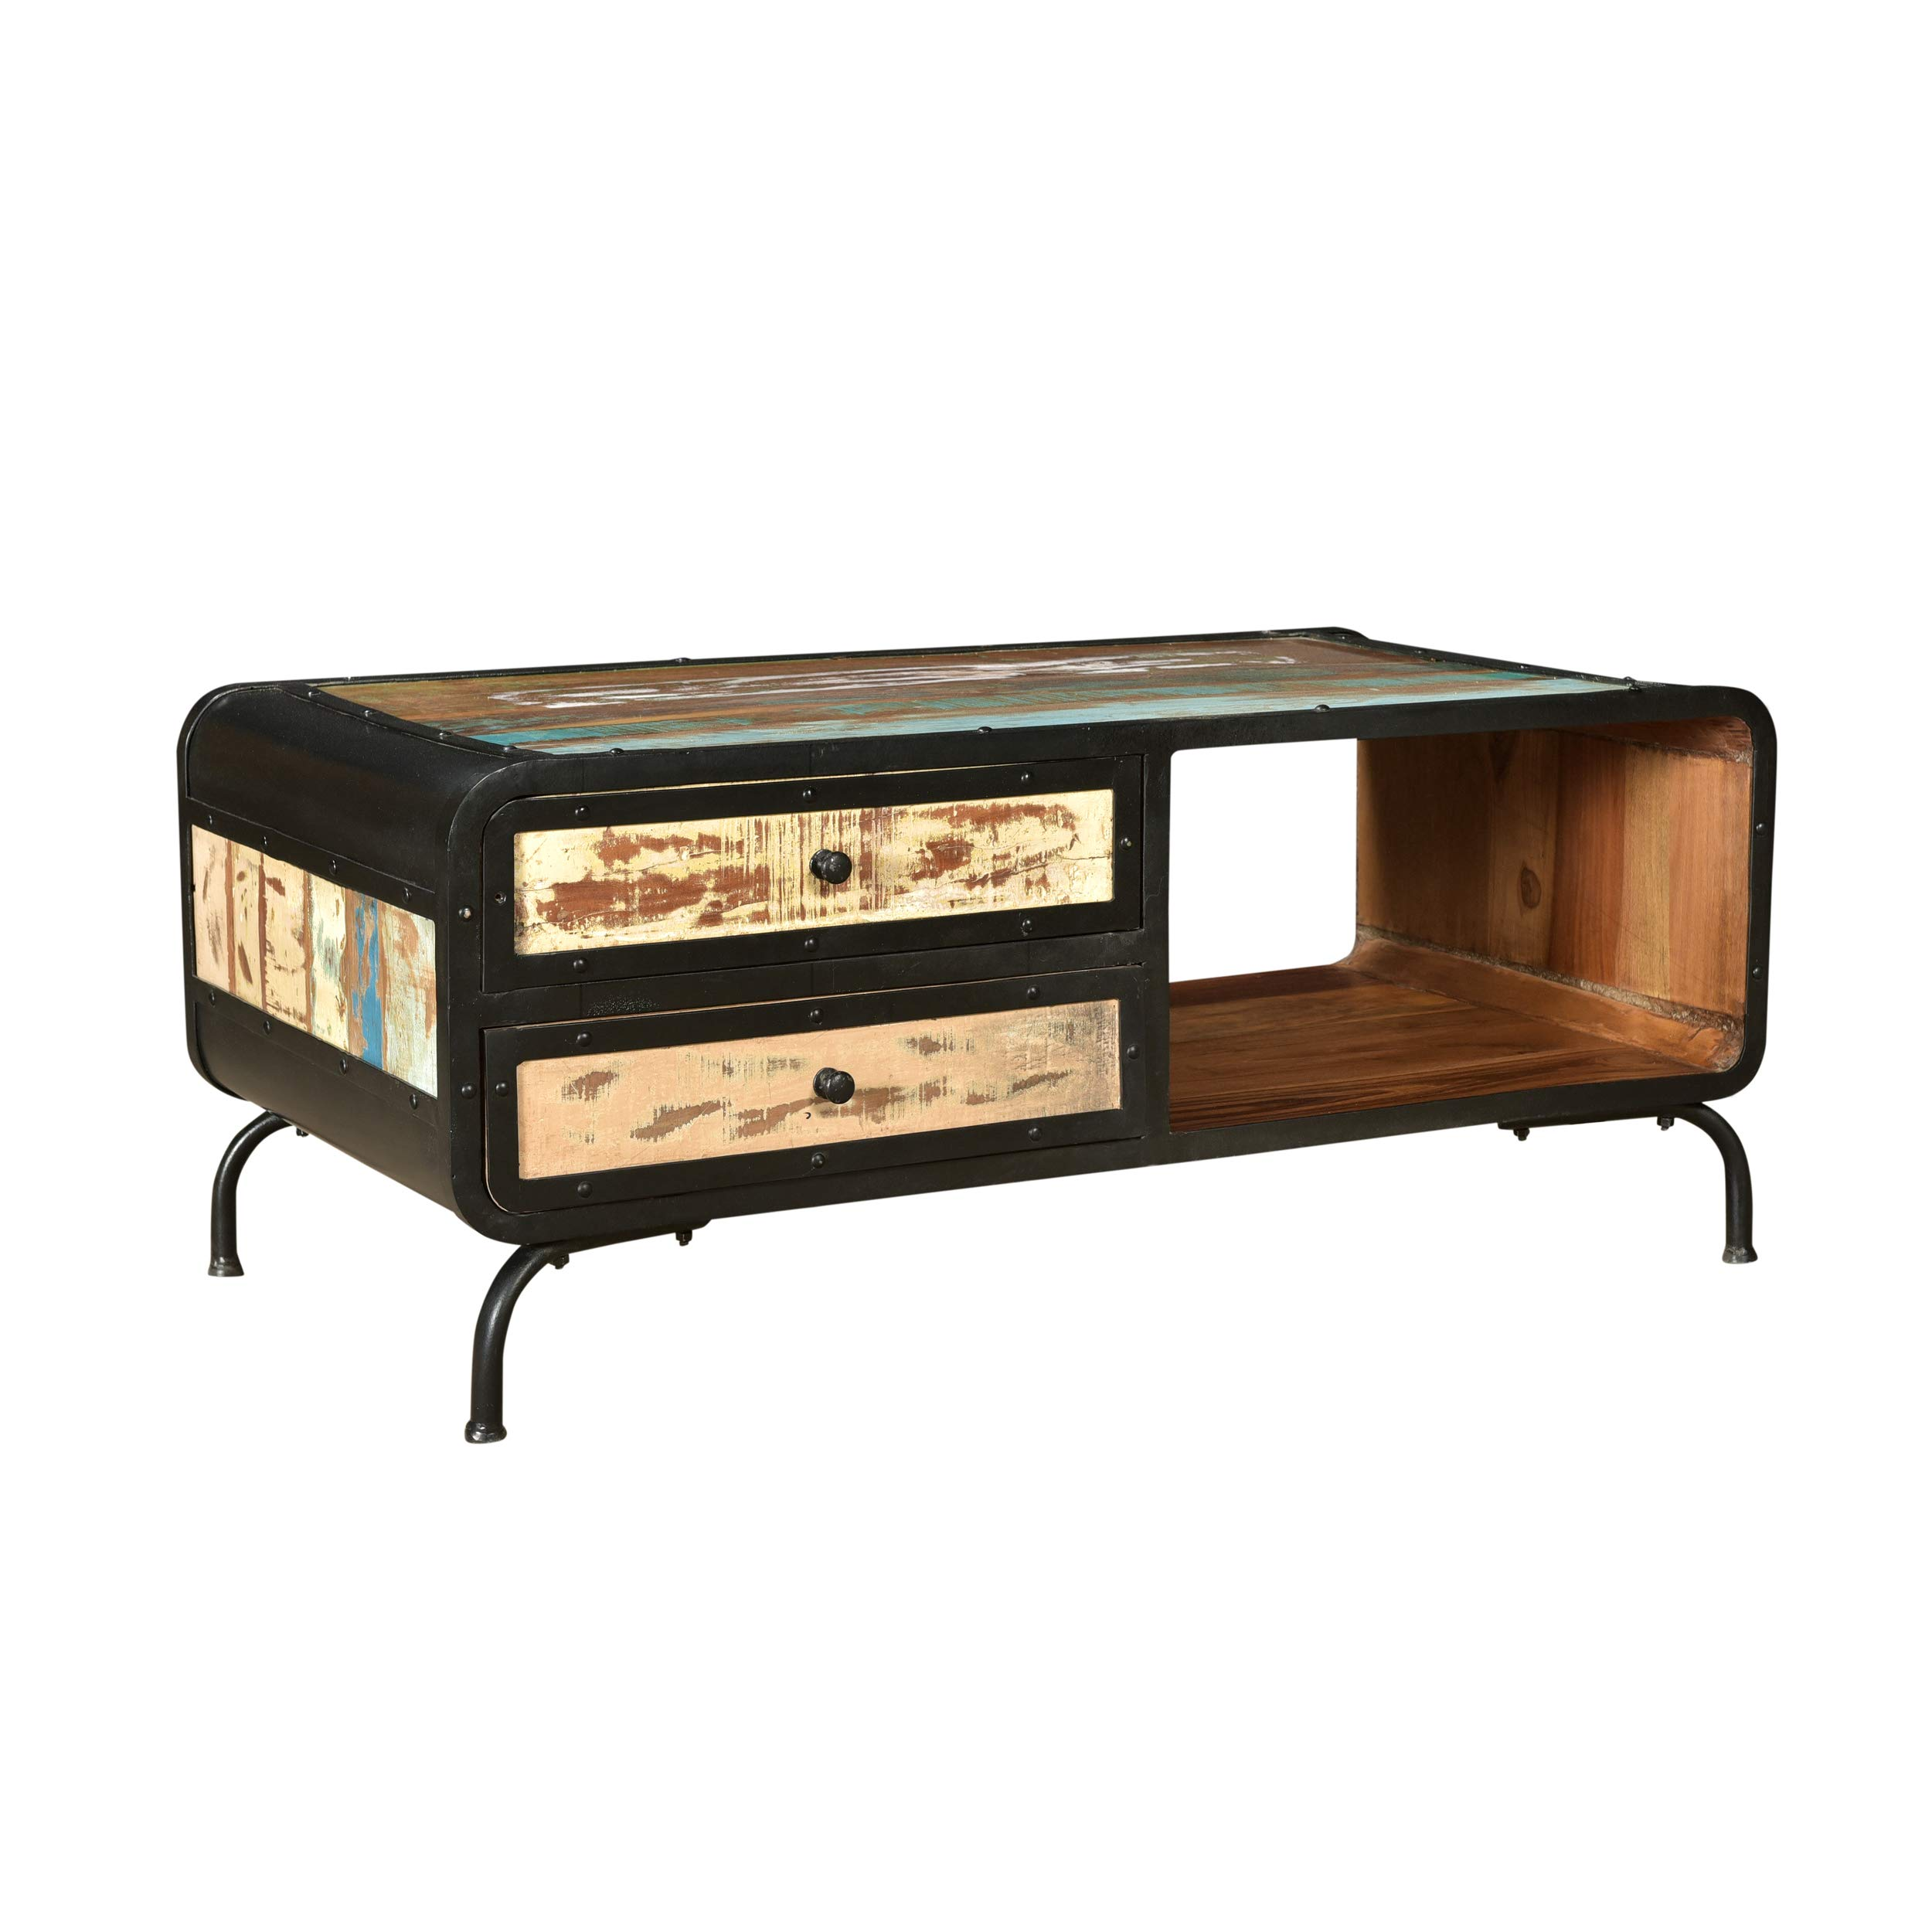 Christopher Knight Home Abby Boho Industrial Recycled Wood TV Stand, Distressed Paint, Black by Christopher Knight Home